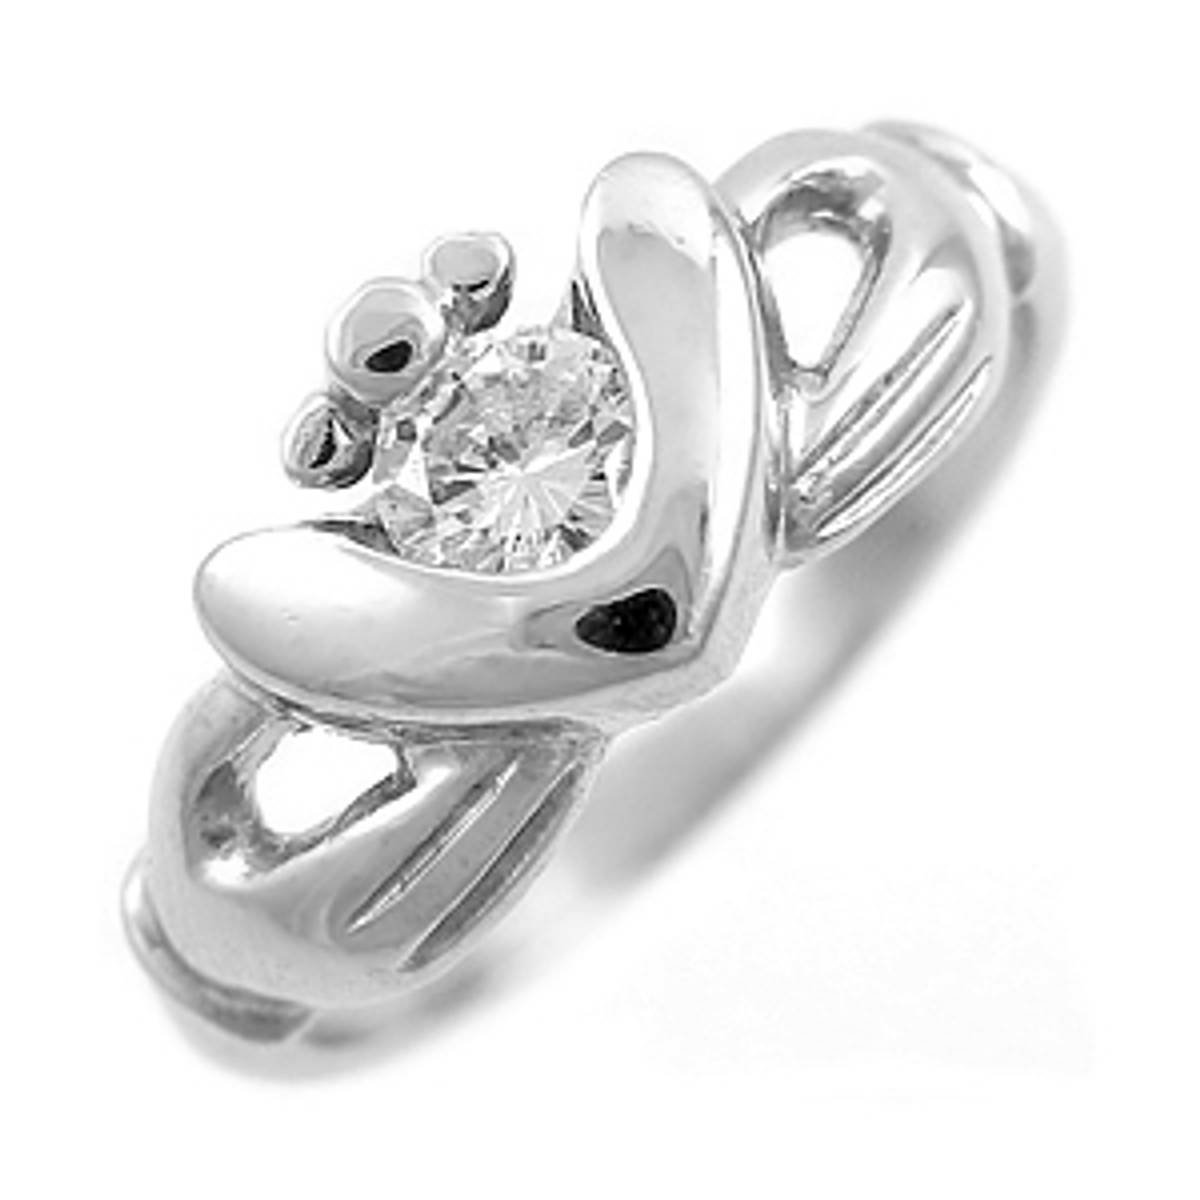 14 carat white gold 0.10cts diamond claddagh engagement ring